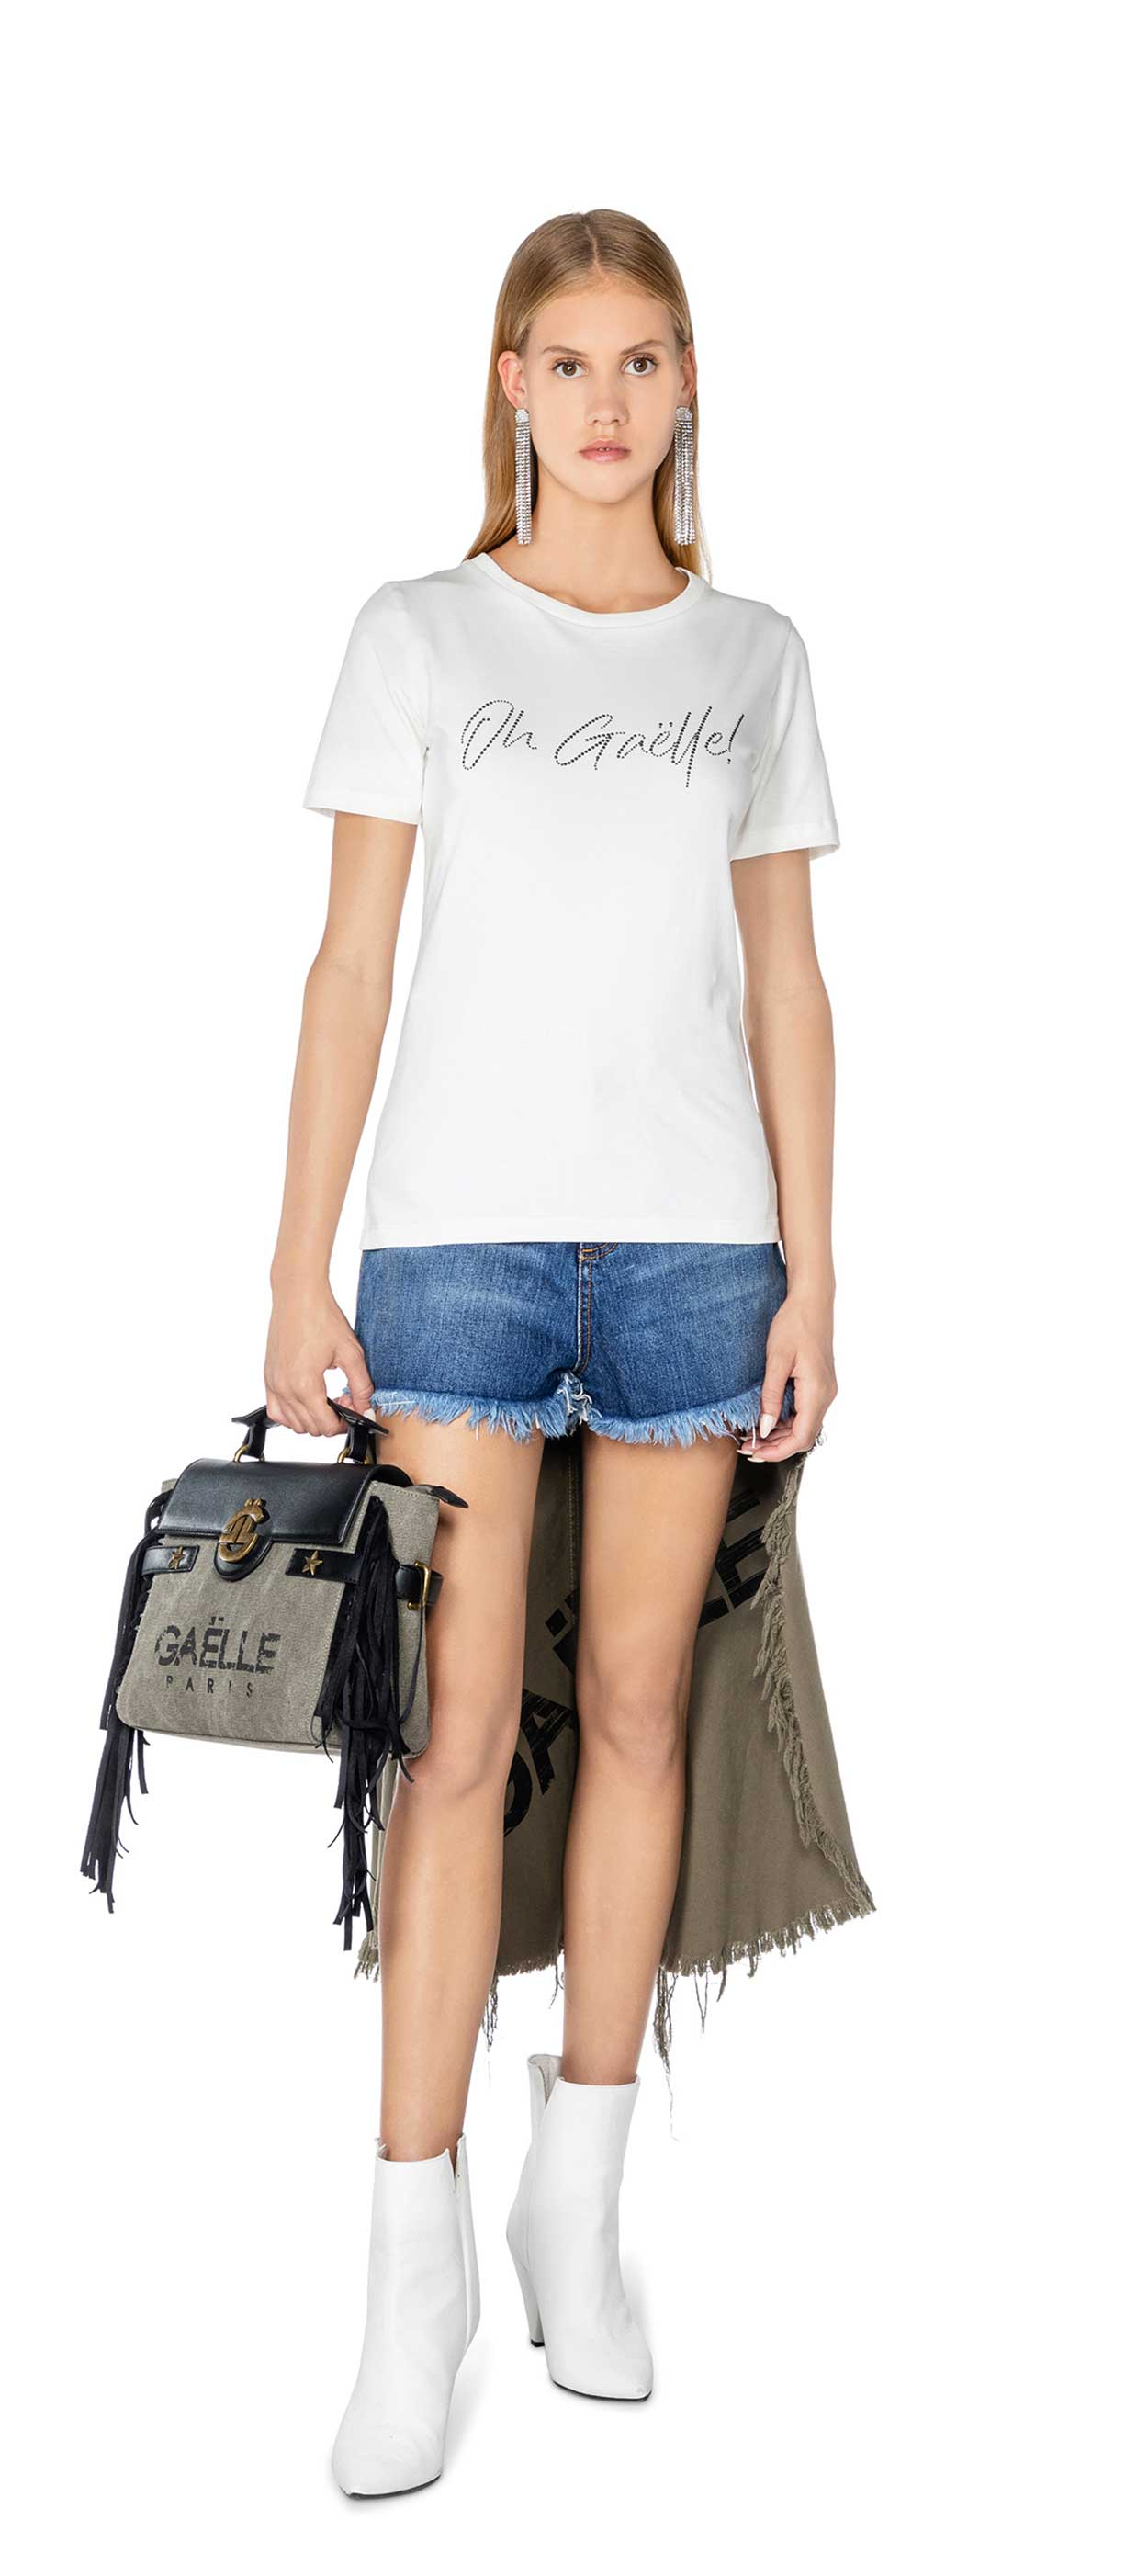 T-SHIRT - GBD7084 - GAELLE PARIS